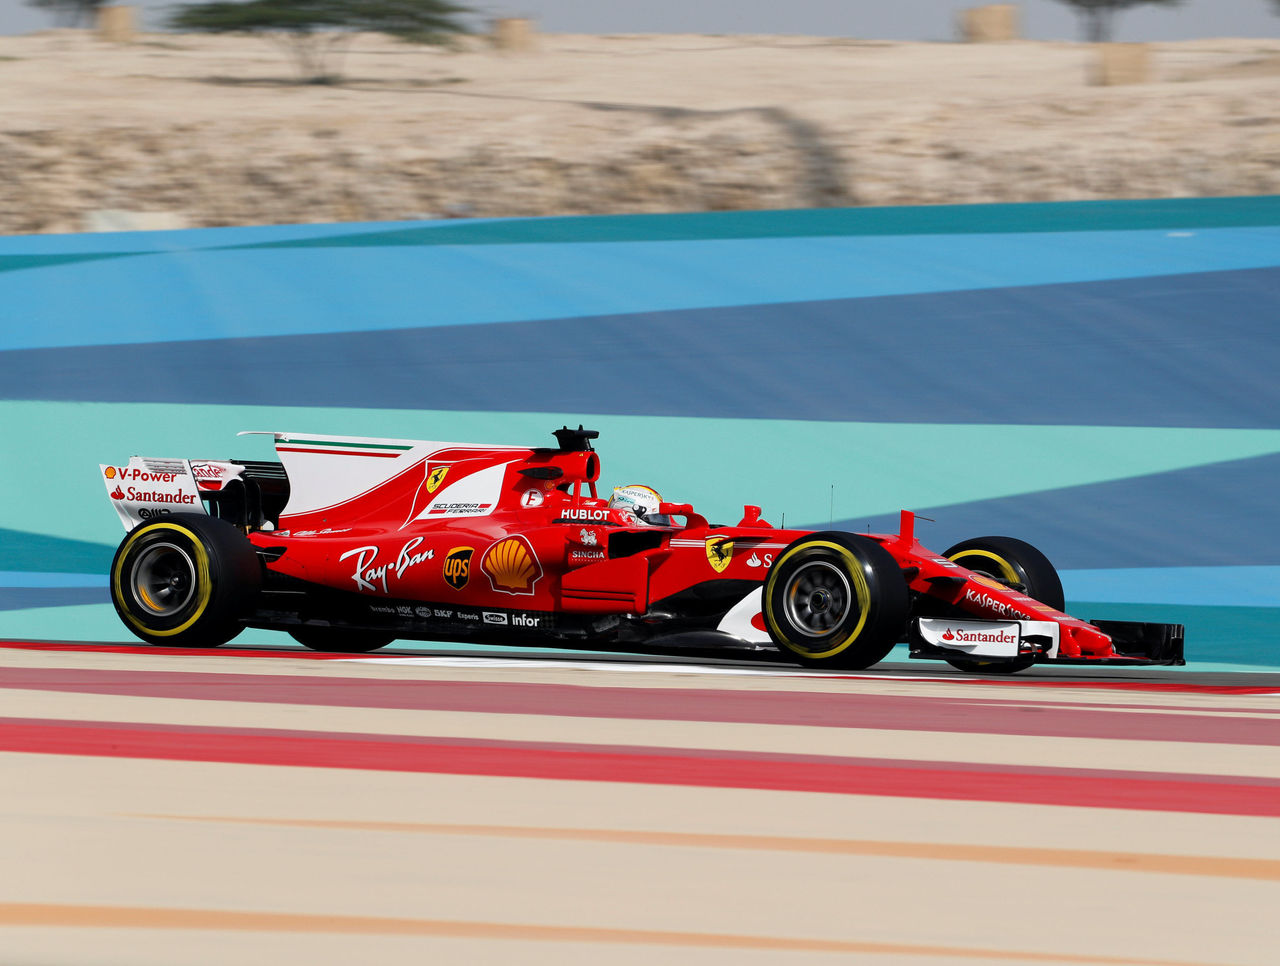 Cropped 2017 04 14t135244z 1942361671 rc1d7692ec00 rtrmadp 3 motor f1 bahrain  1